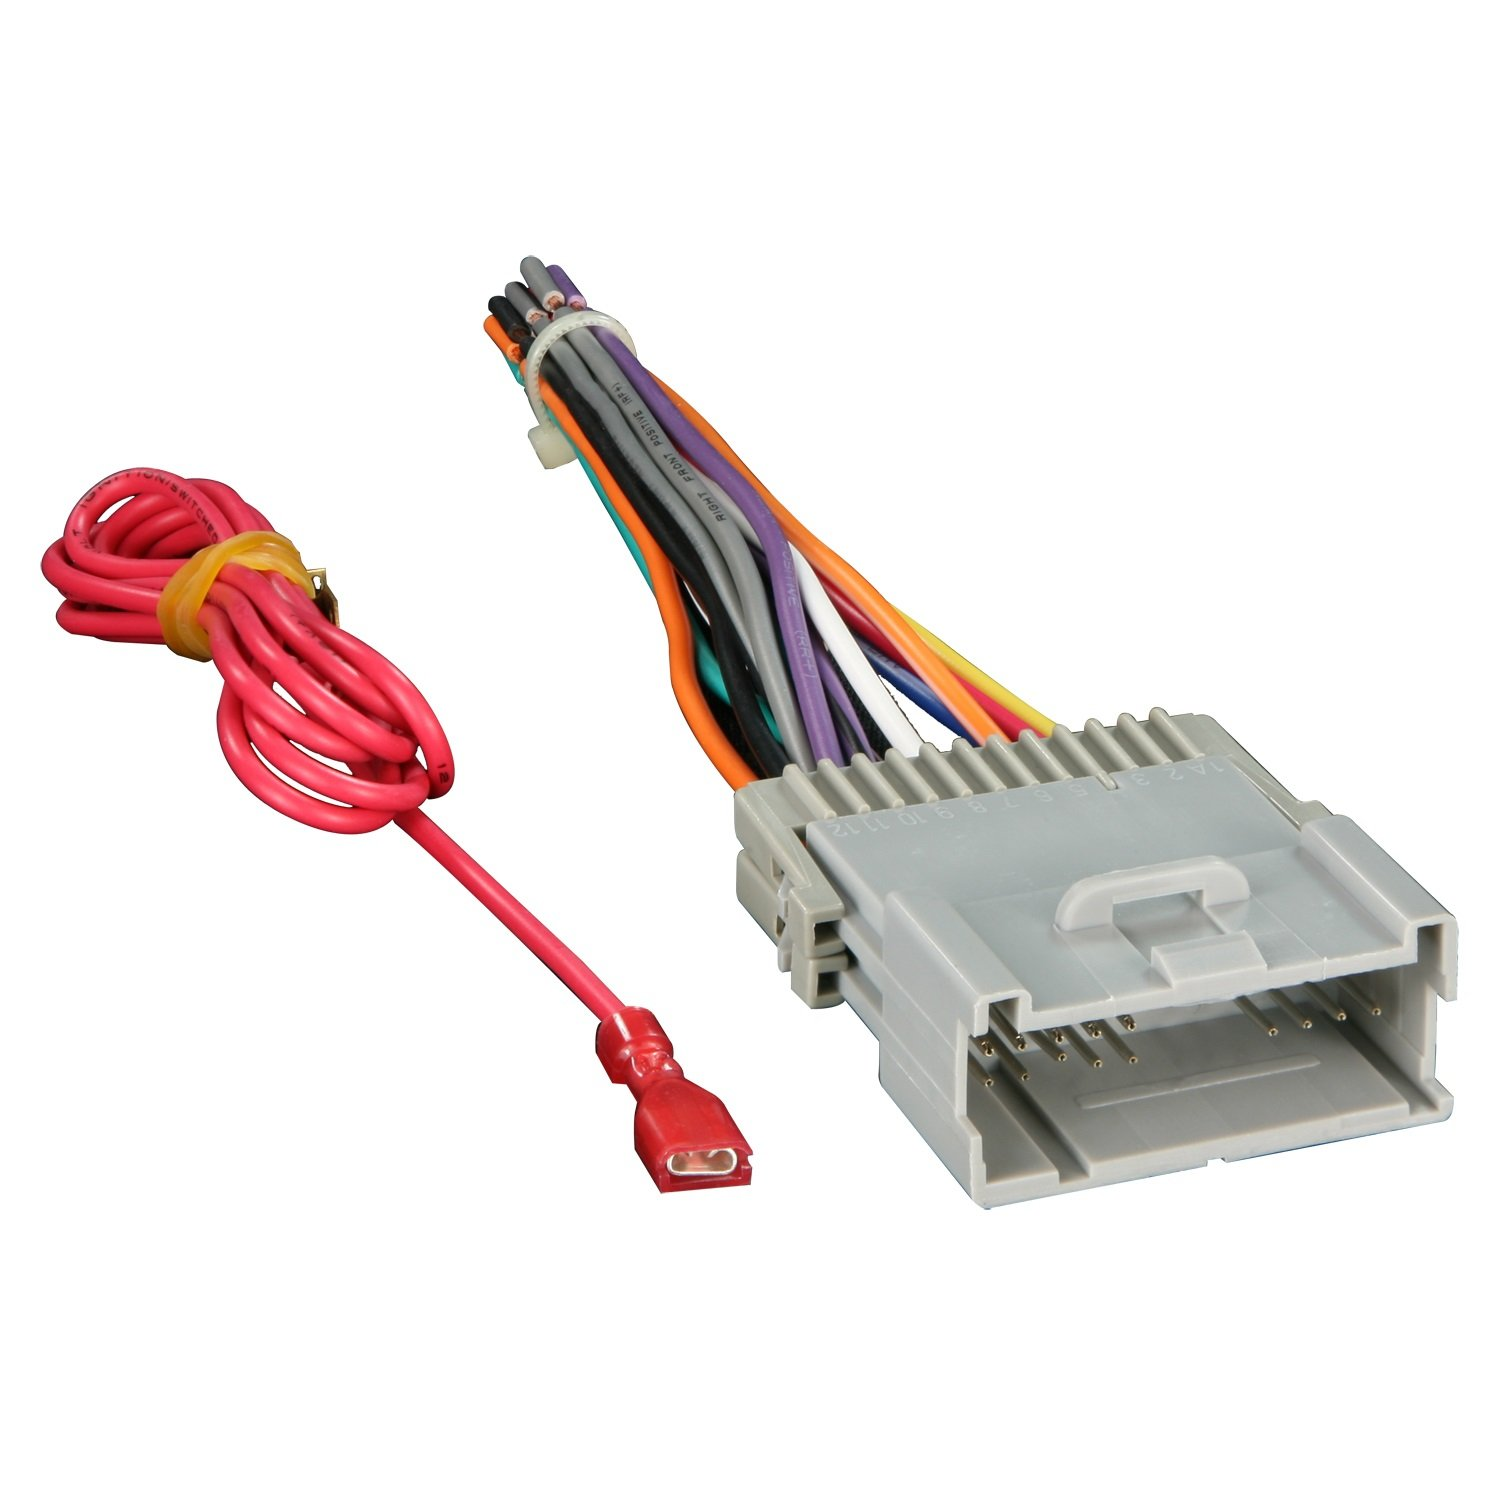 61eewxp9orL._SL1500_ amazon com metra 70 2003 radio wiring harness for gm 98 08 metra radio wiring harness at n-0.co